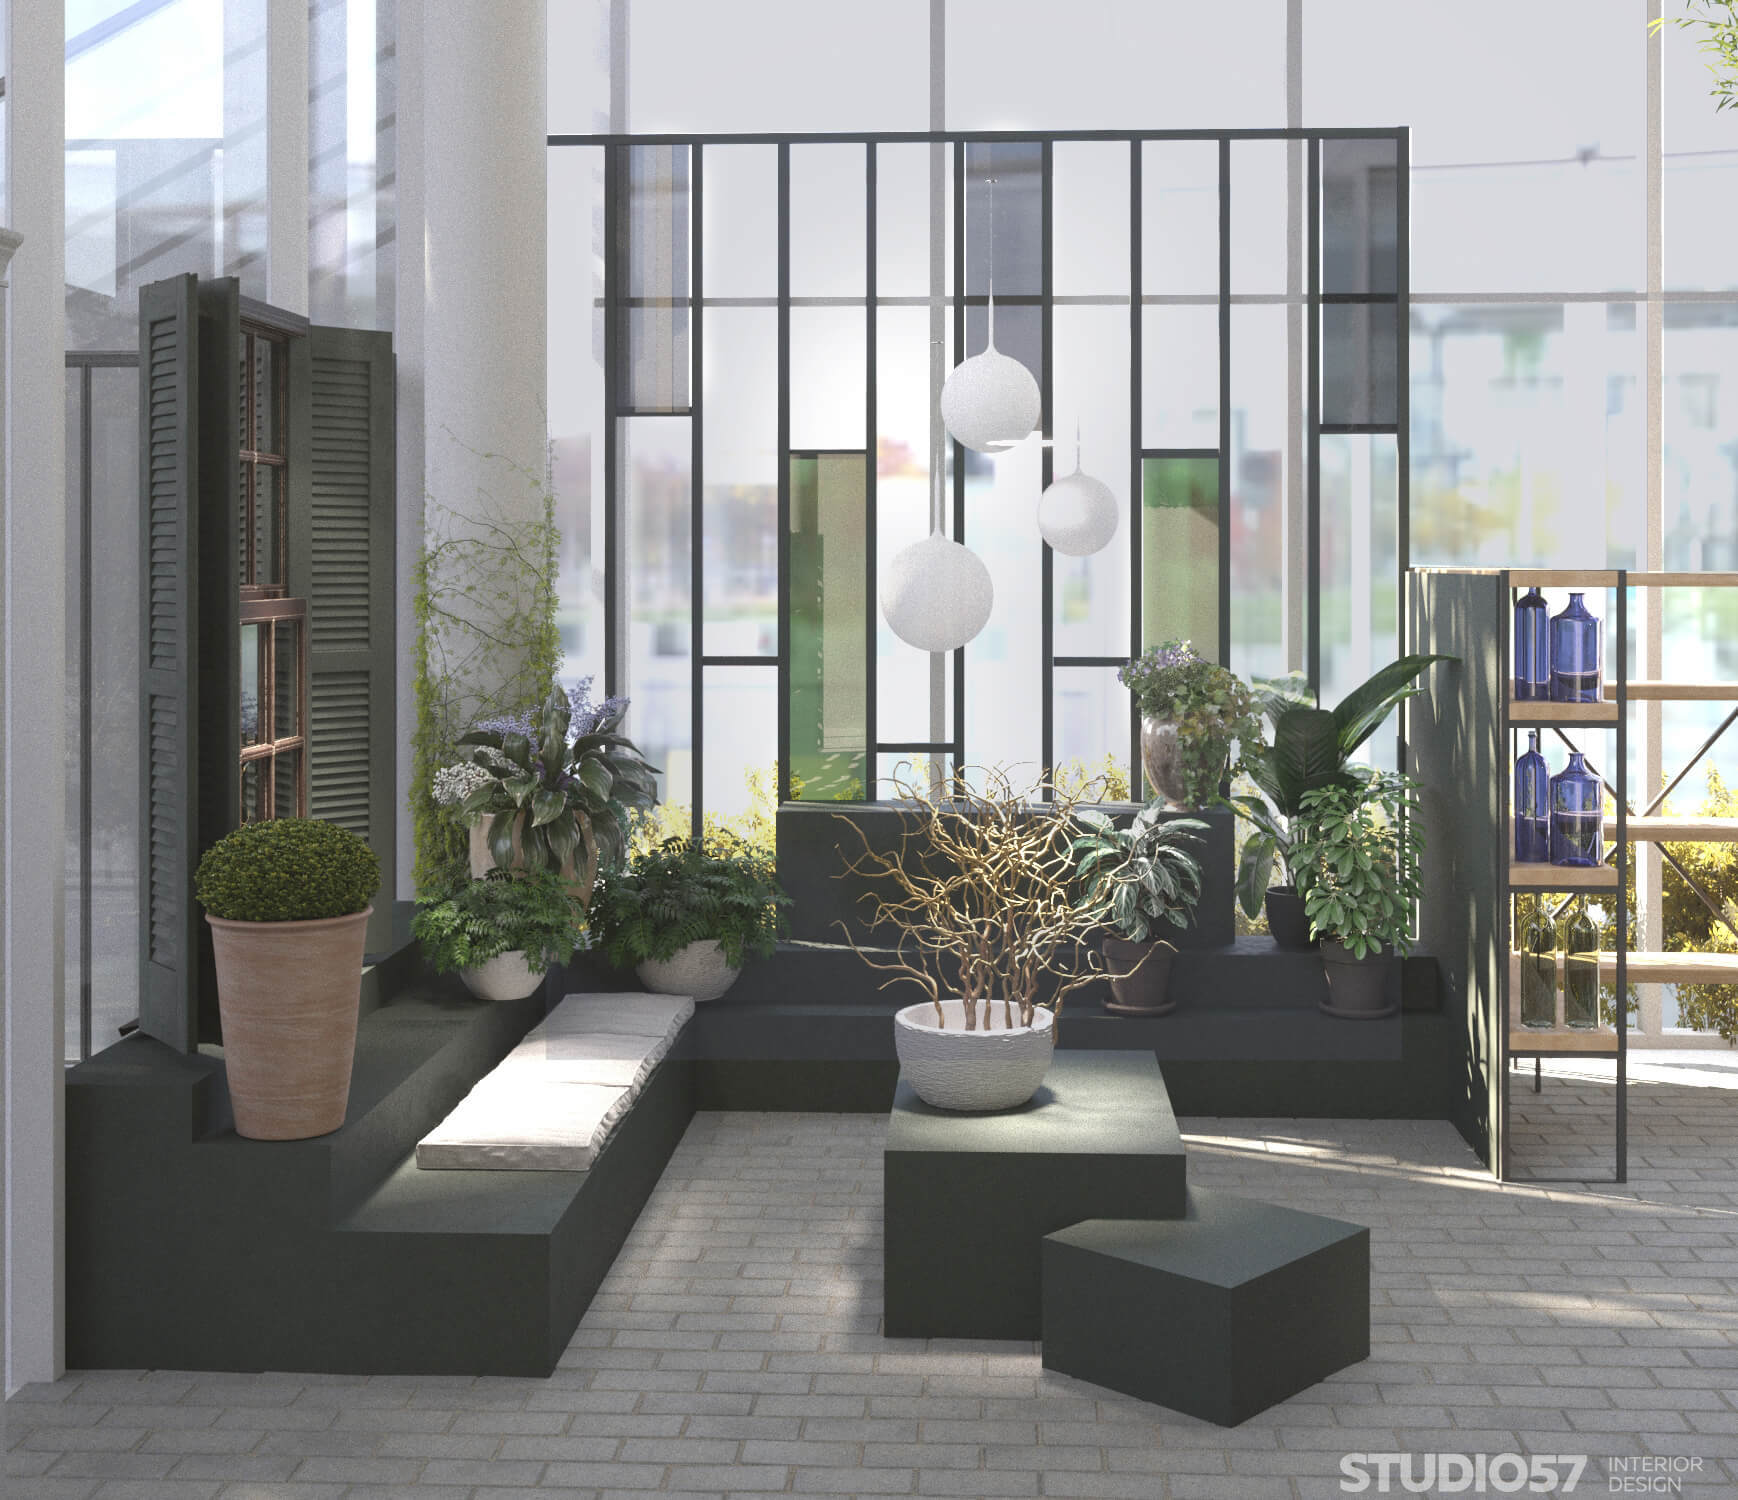 Design project store for garden